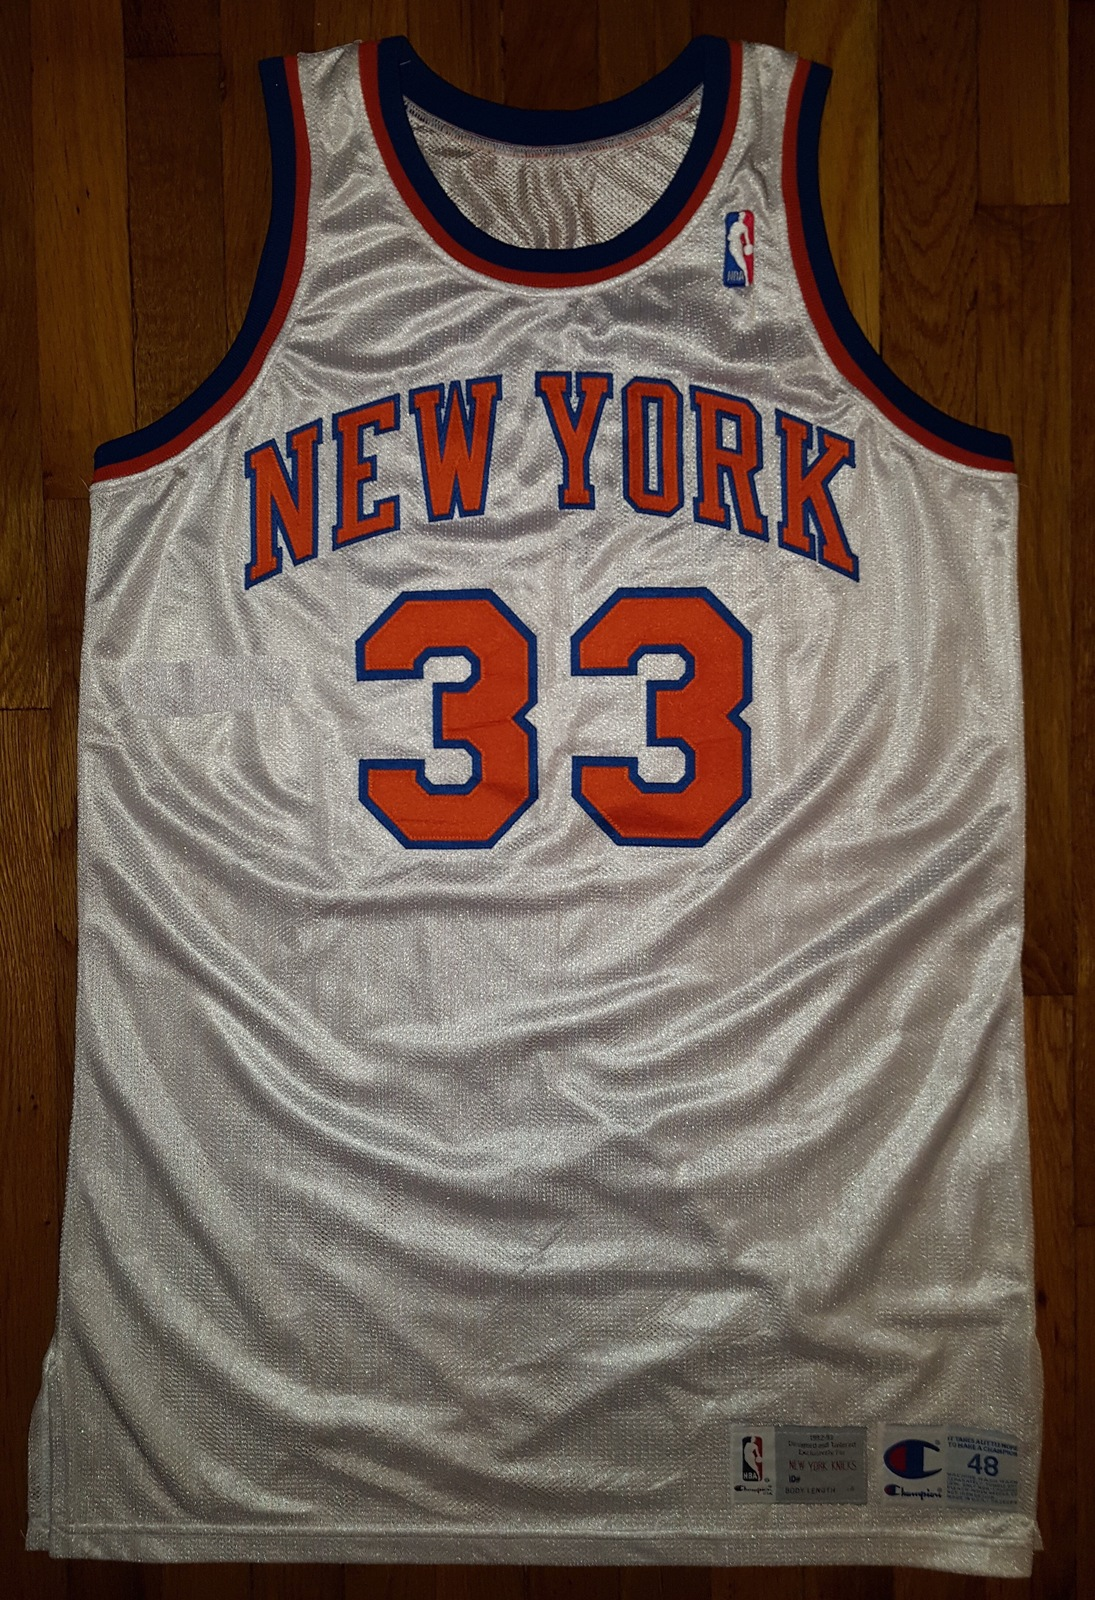 Primary image for 1992-93 New York Knicks Patrick Ewing Game Issued Jersey 48+6 worn used pro cut